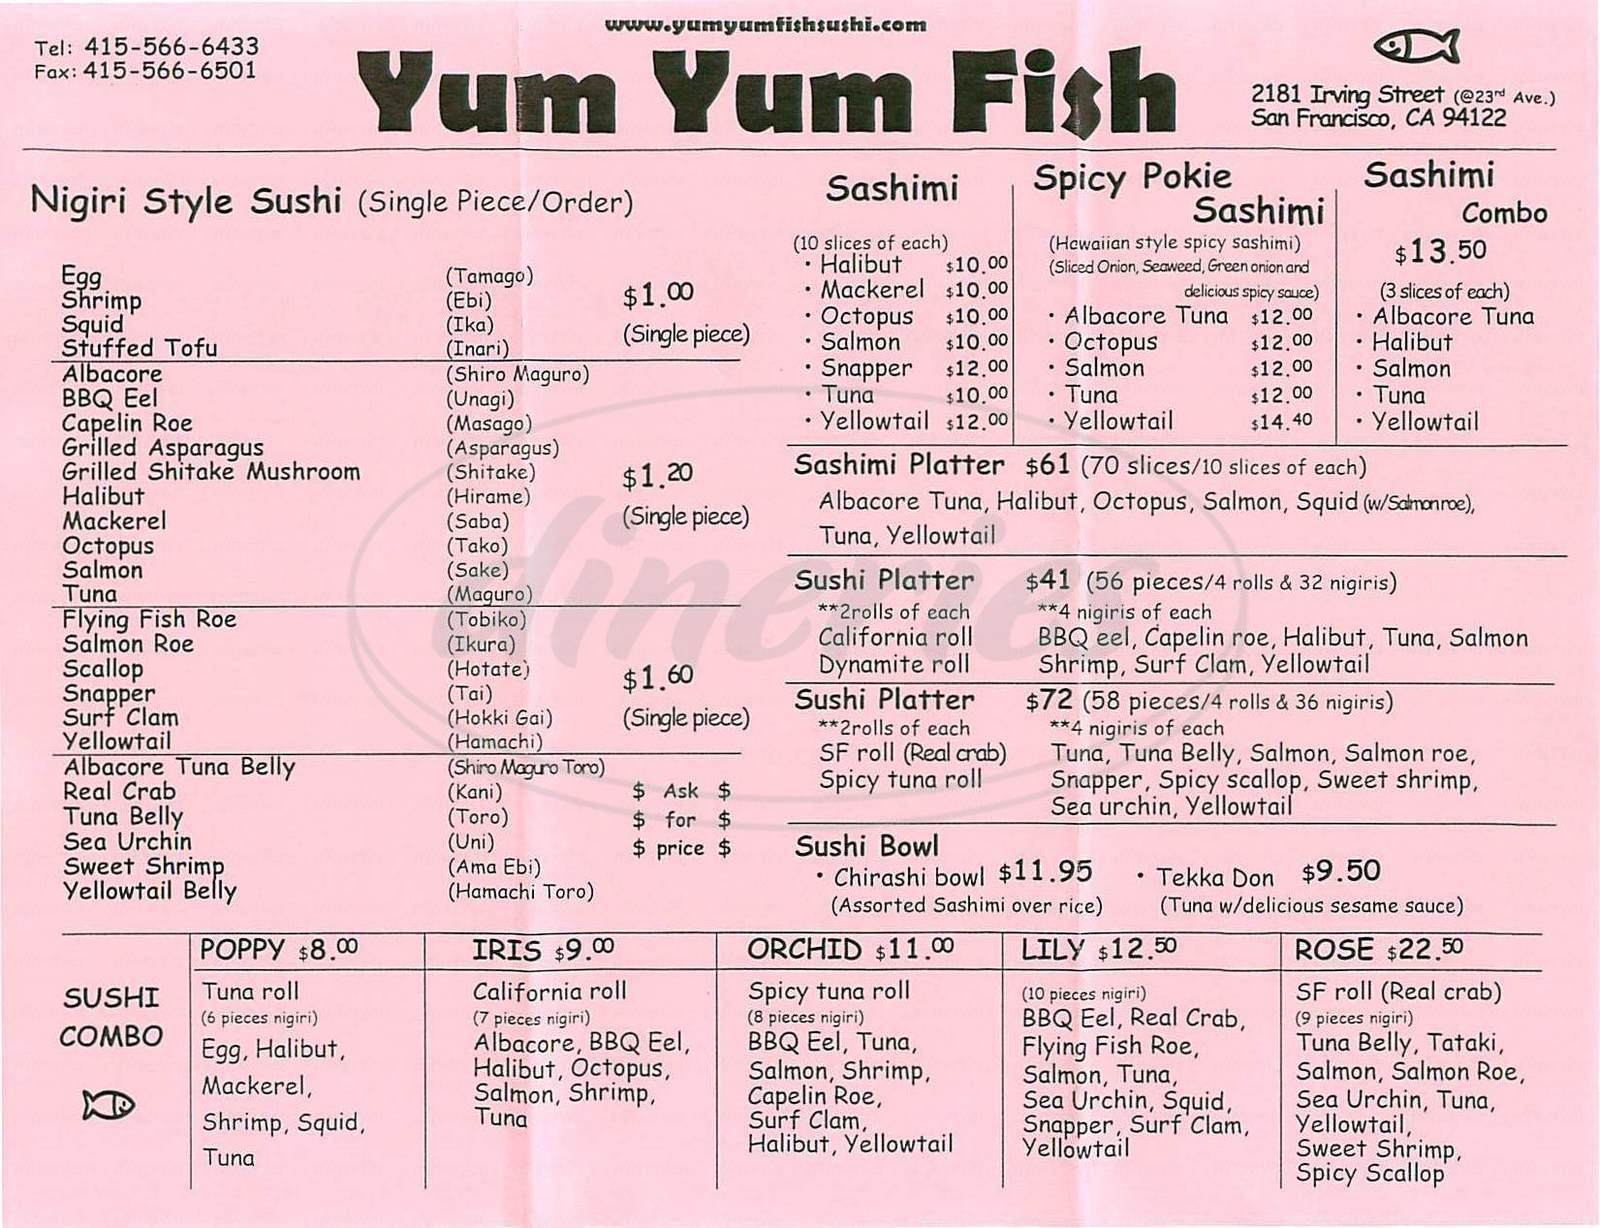 menu for Yum Yum Fish